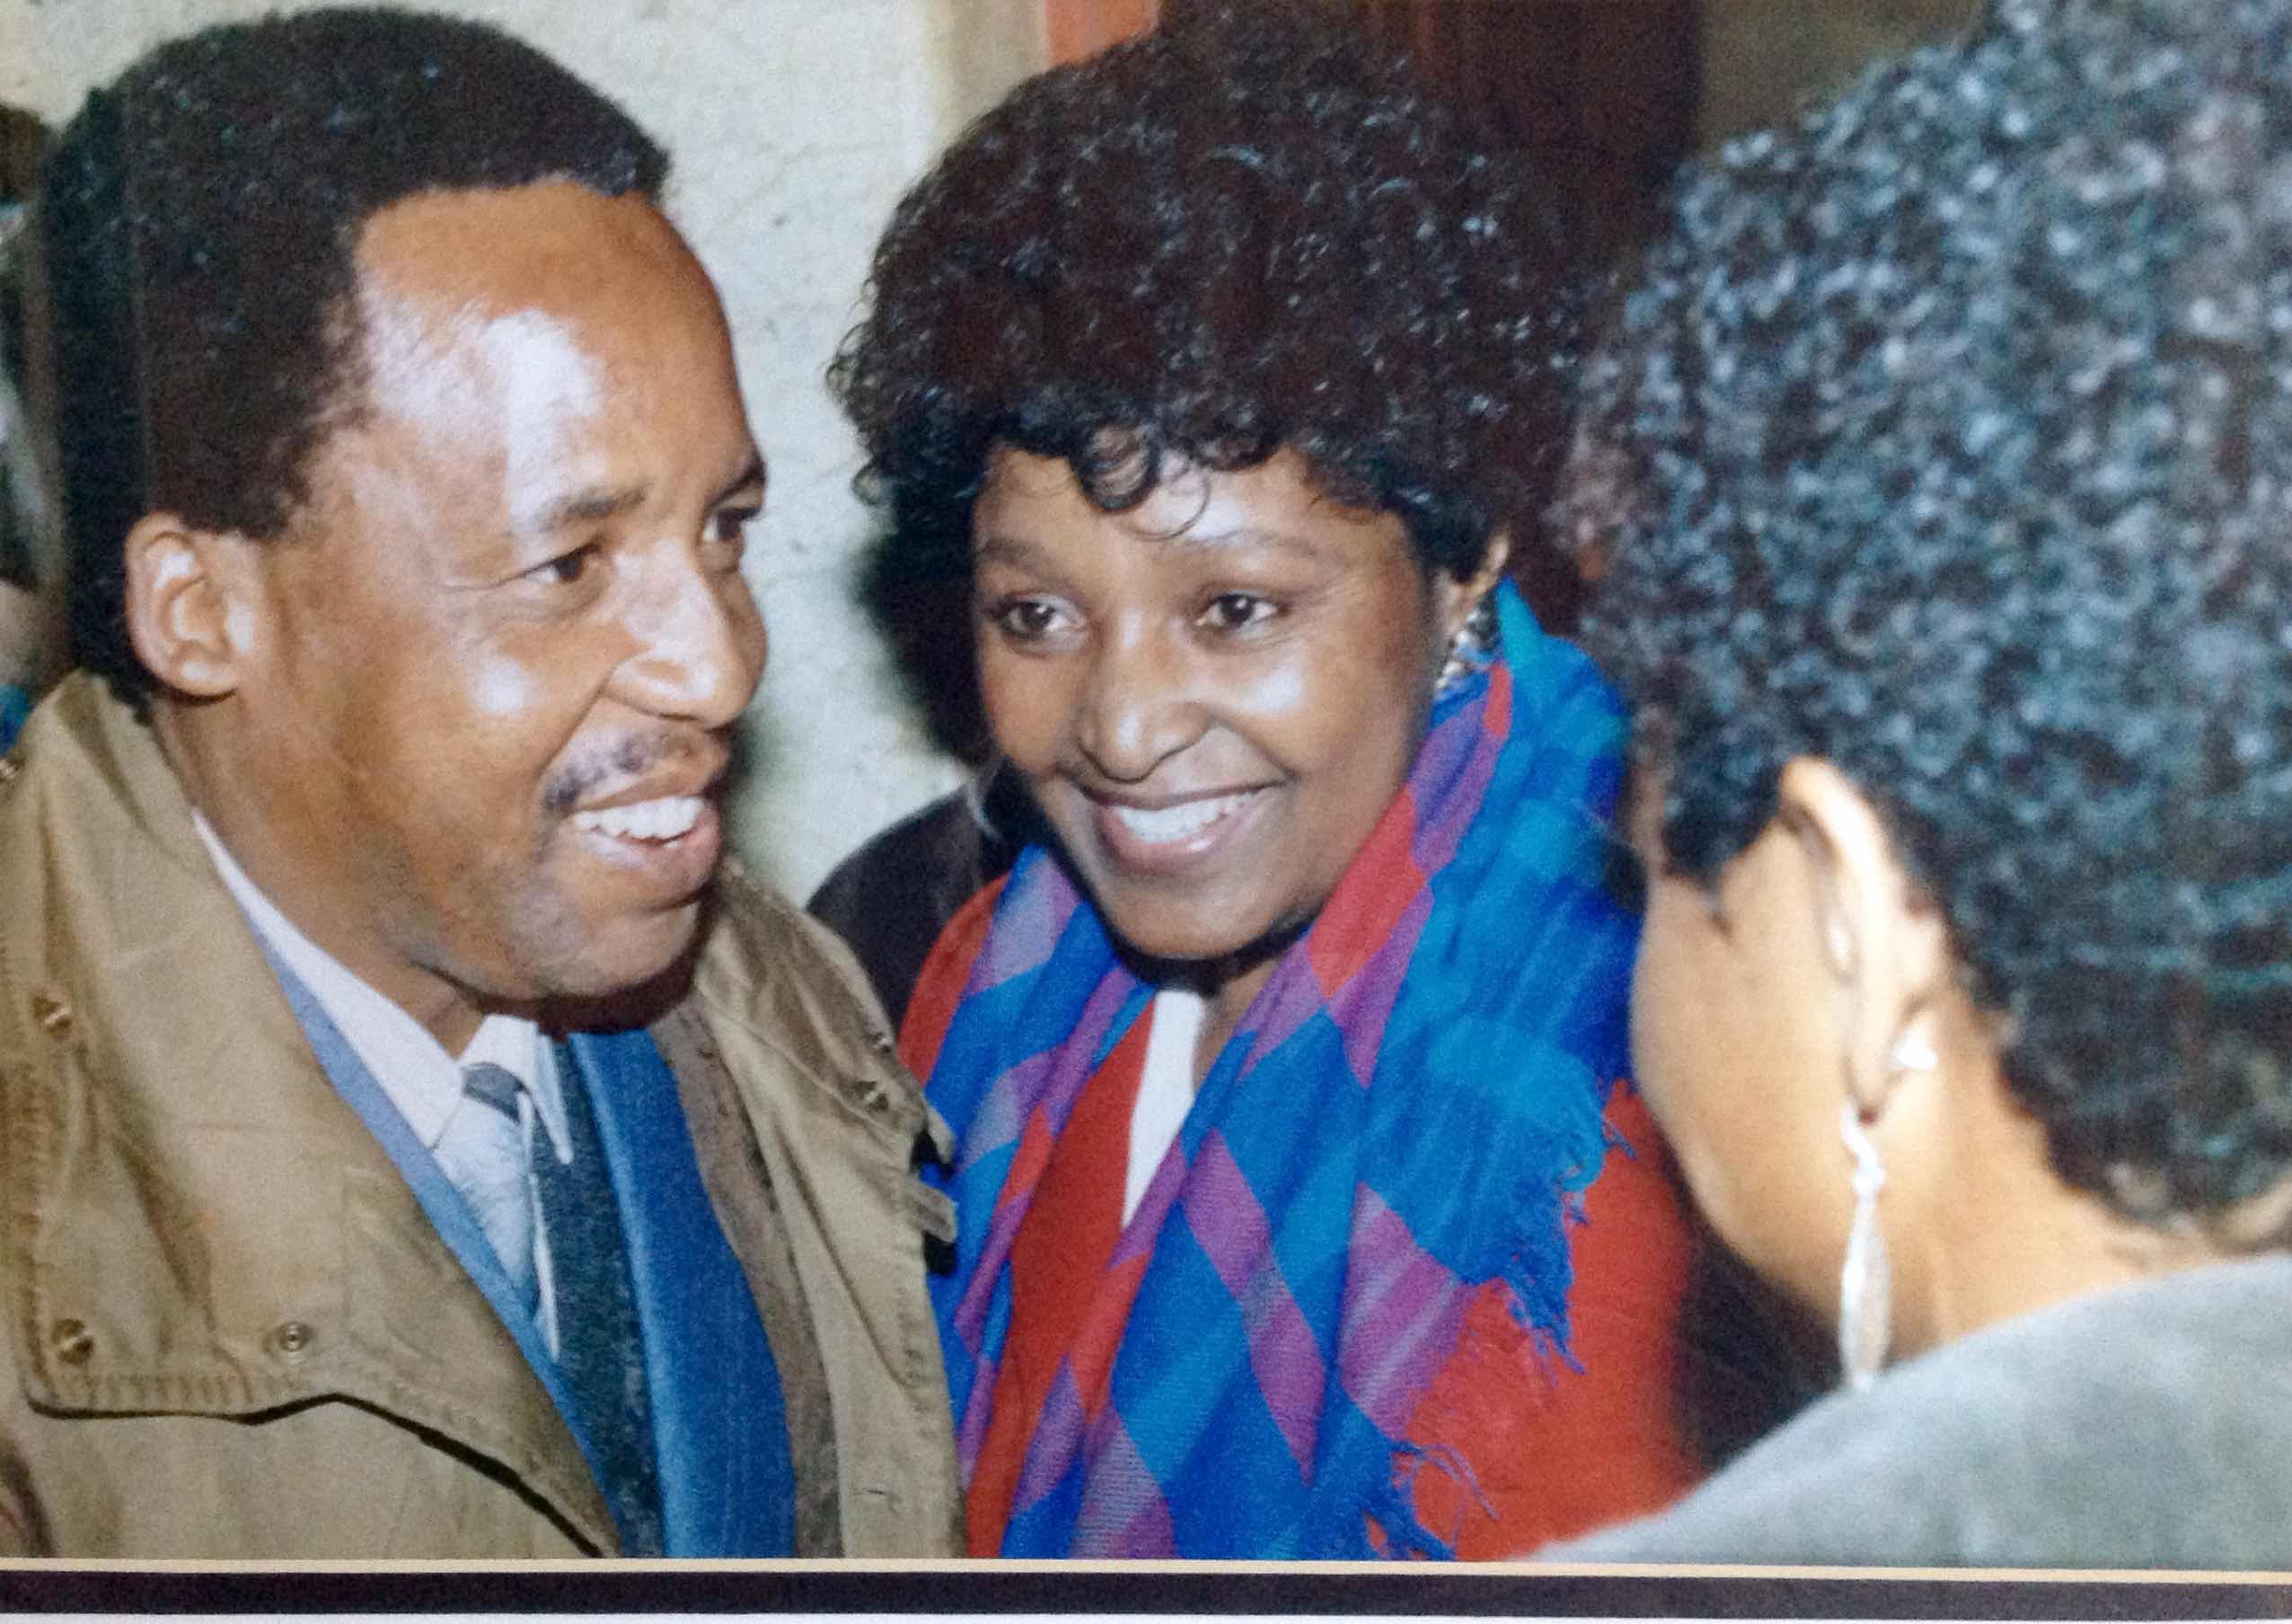 Chris Hani, Winnie Mandela and Sylvia Vollenhoven in Lusaka in 1989. Photo courtesy of Rashid Lombard.